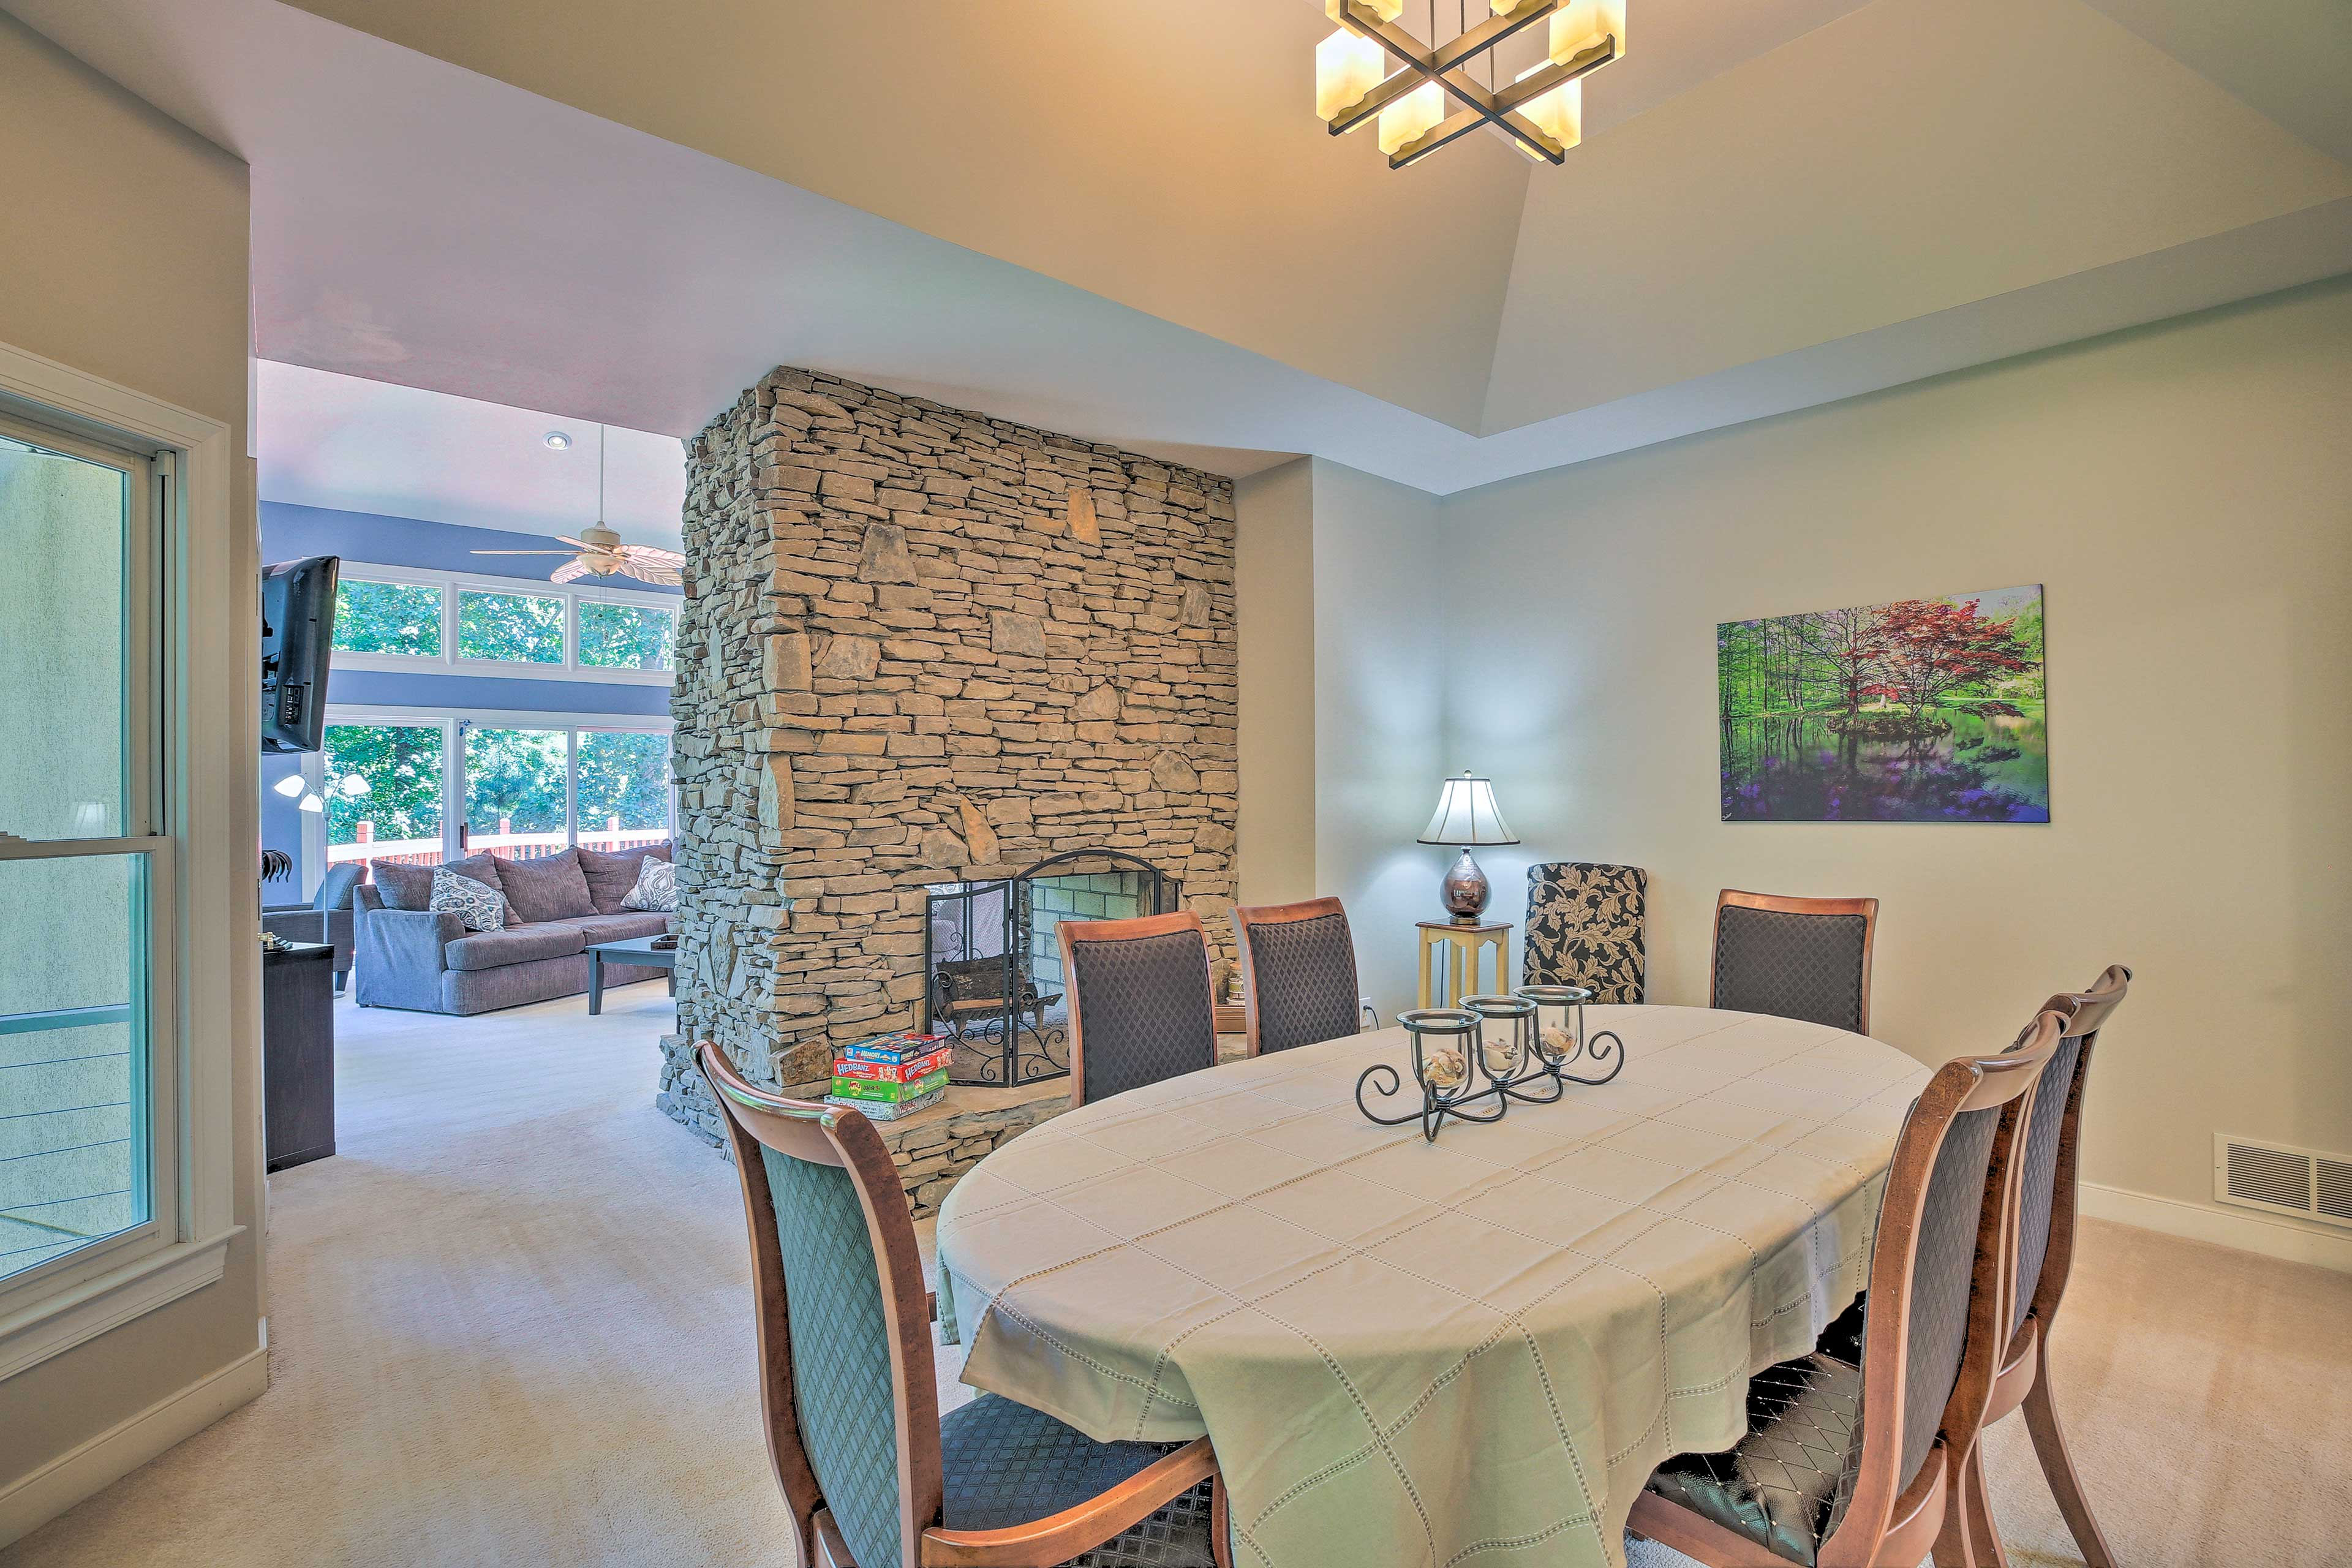 Savor home-cooked meals together at the dining table for 6.